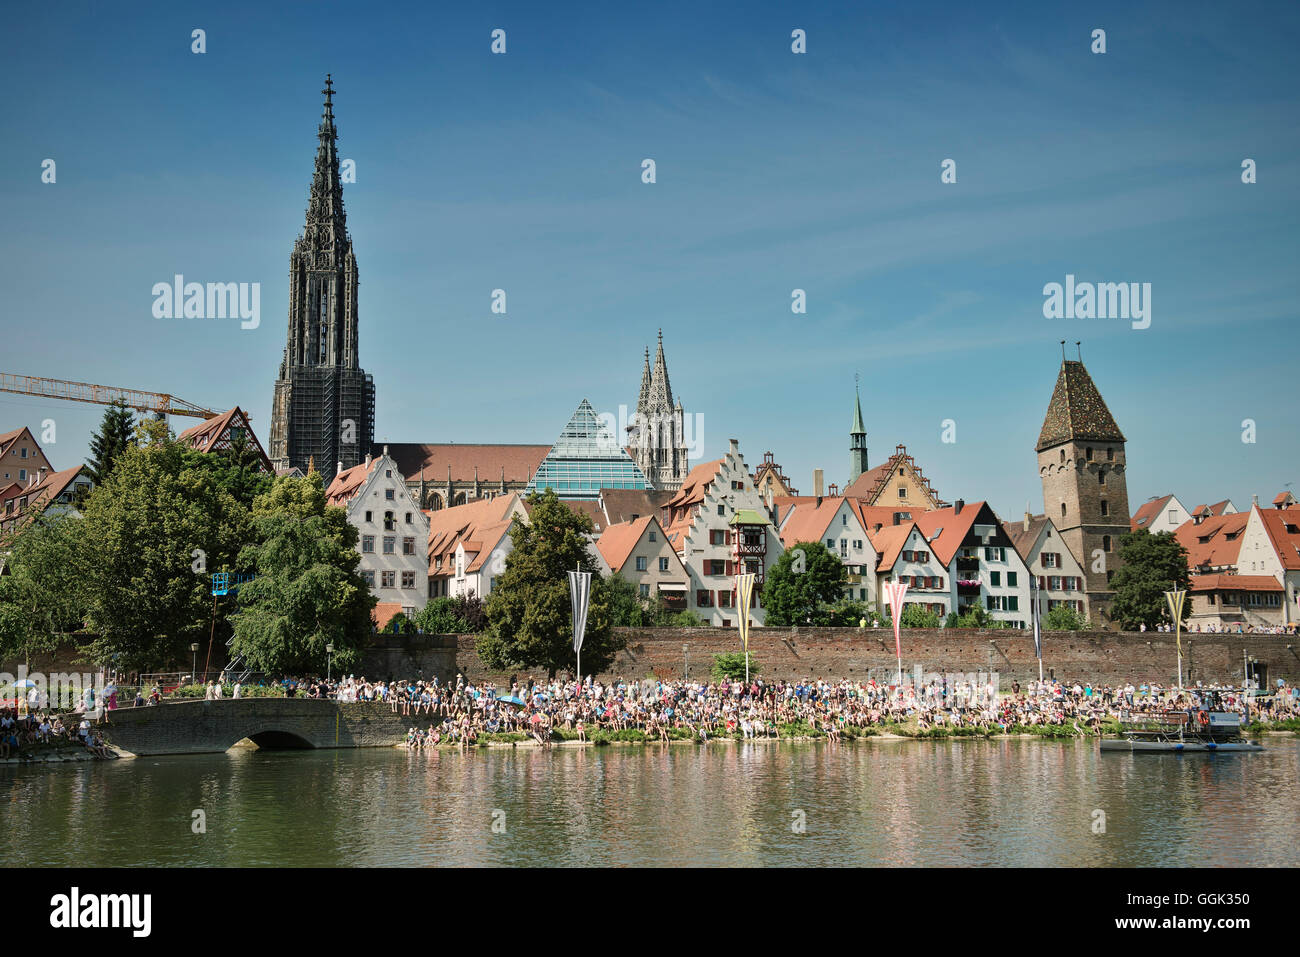 Ulm Cathedral and Metzgerturm during the Fisher Cup 2013, Ulm, Baden-Wuerttemberg, Germany - Stock Image